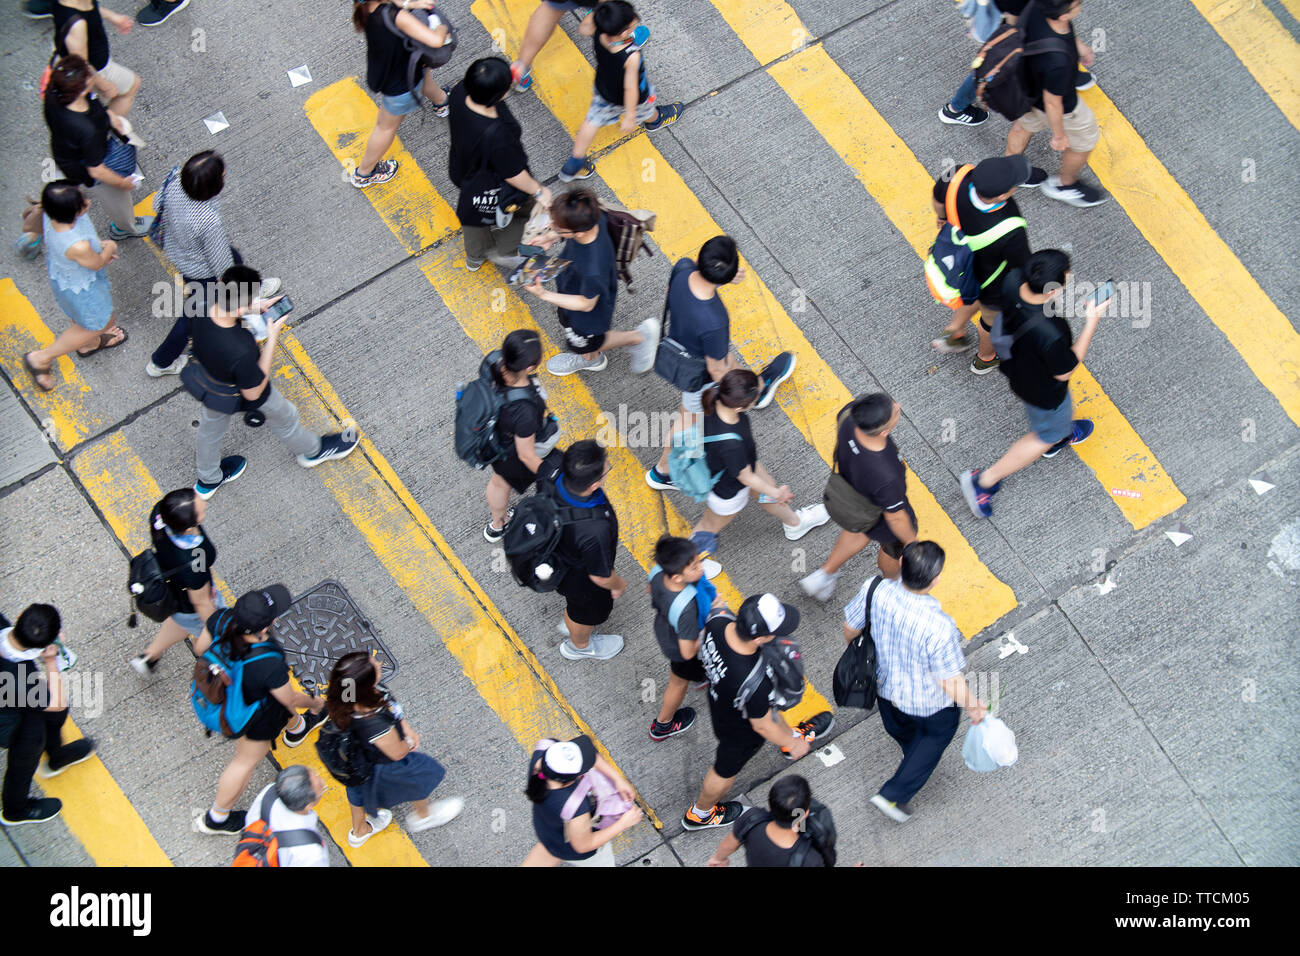 Hong Kong, Hong Kong. 16 June, 2019.  Protesters crossing streets in Tin Hau to gather for protests on Sunday against the governments introduction of a contentious law and the handling of subsequent protests. Credit: Danny Tsai/Alamy Live News Stock Photo